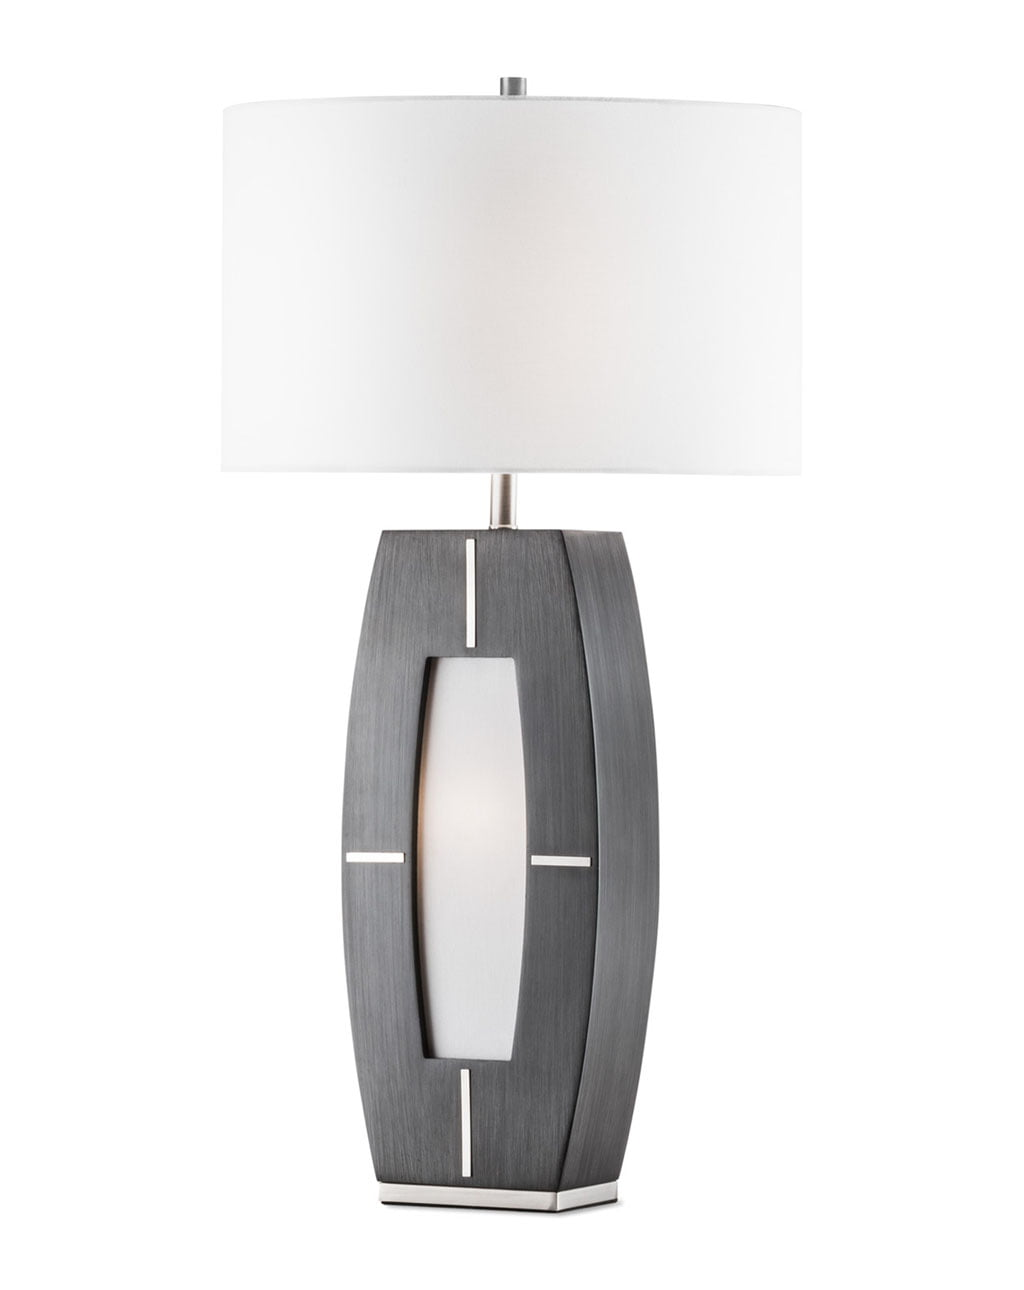 Delacy Table Lamp, Brushed Nickel